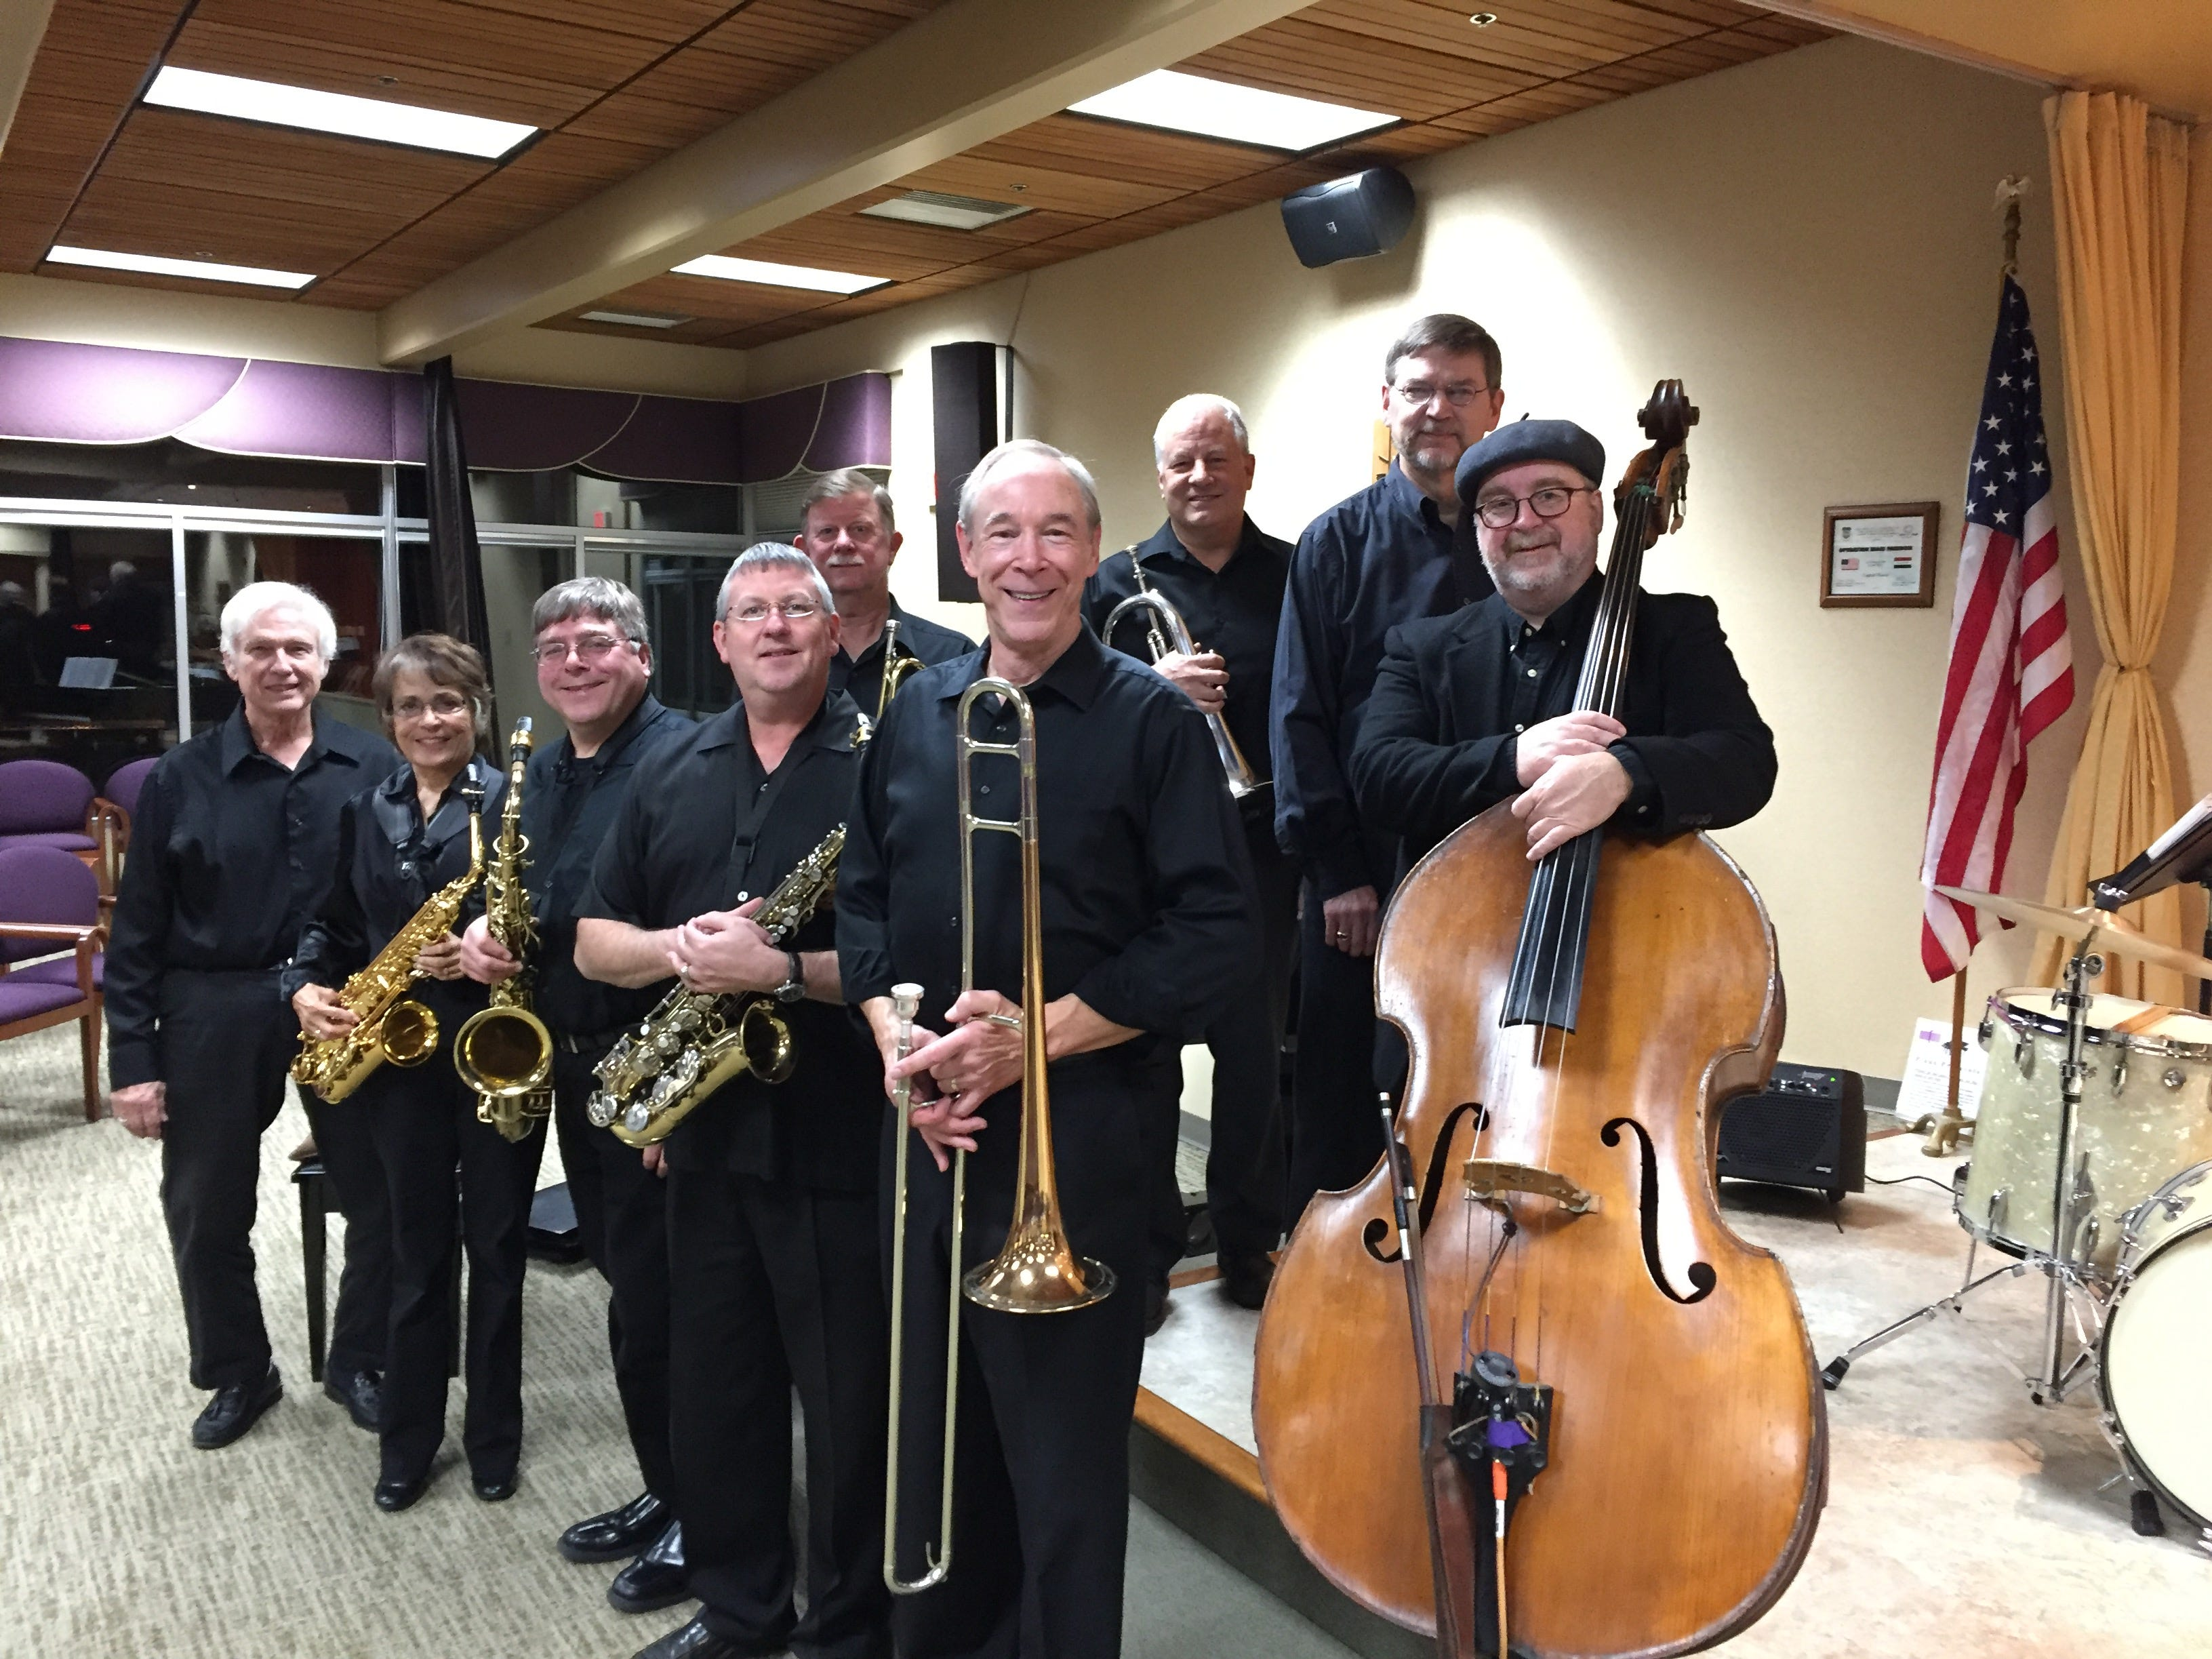 Dance: The Grand Jazz and Swing Band will perform, 7:30 to 10:30 p.m. Friday, Feb. 8, Salem Eagles Lodge, 2771 Pence Loop SE, Salem. $5 cover.